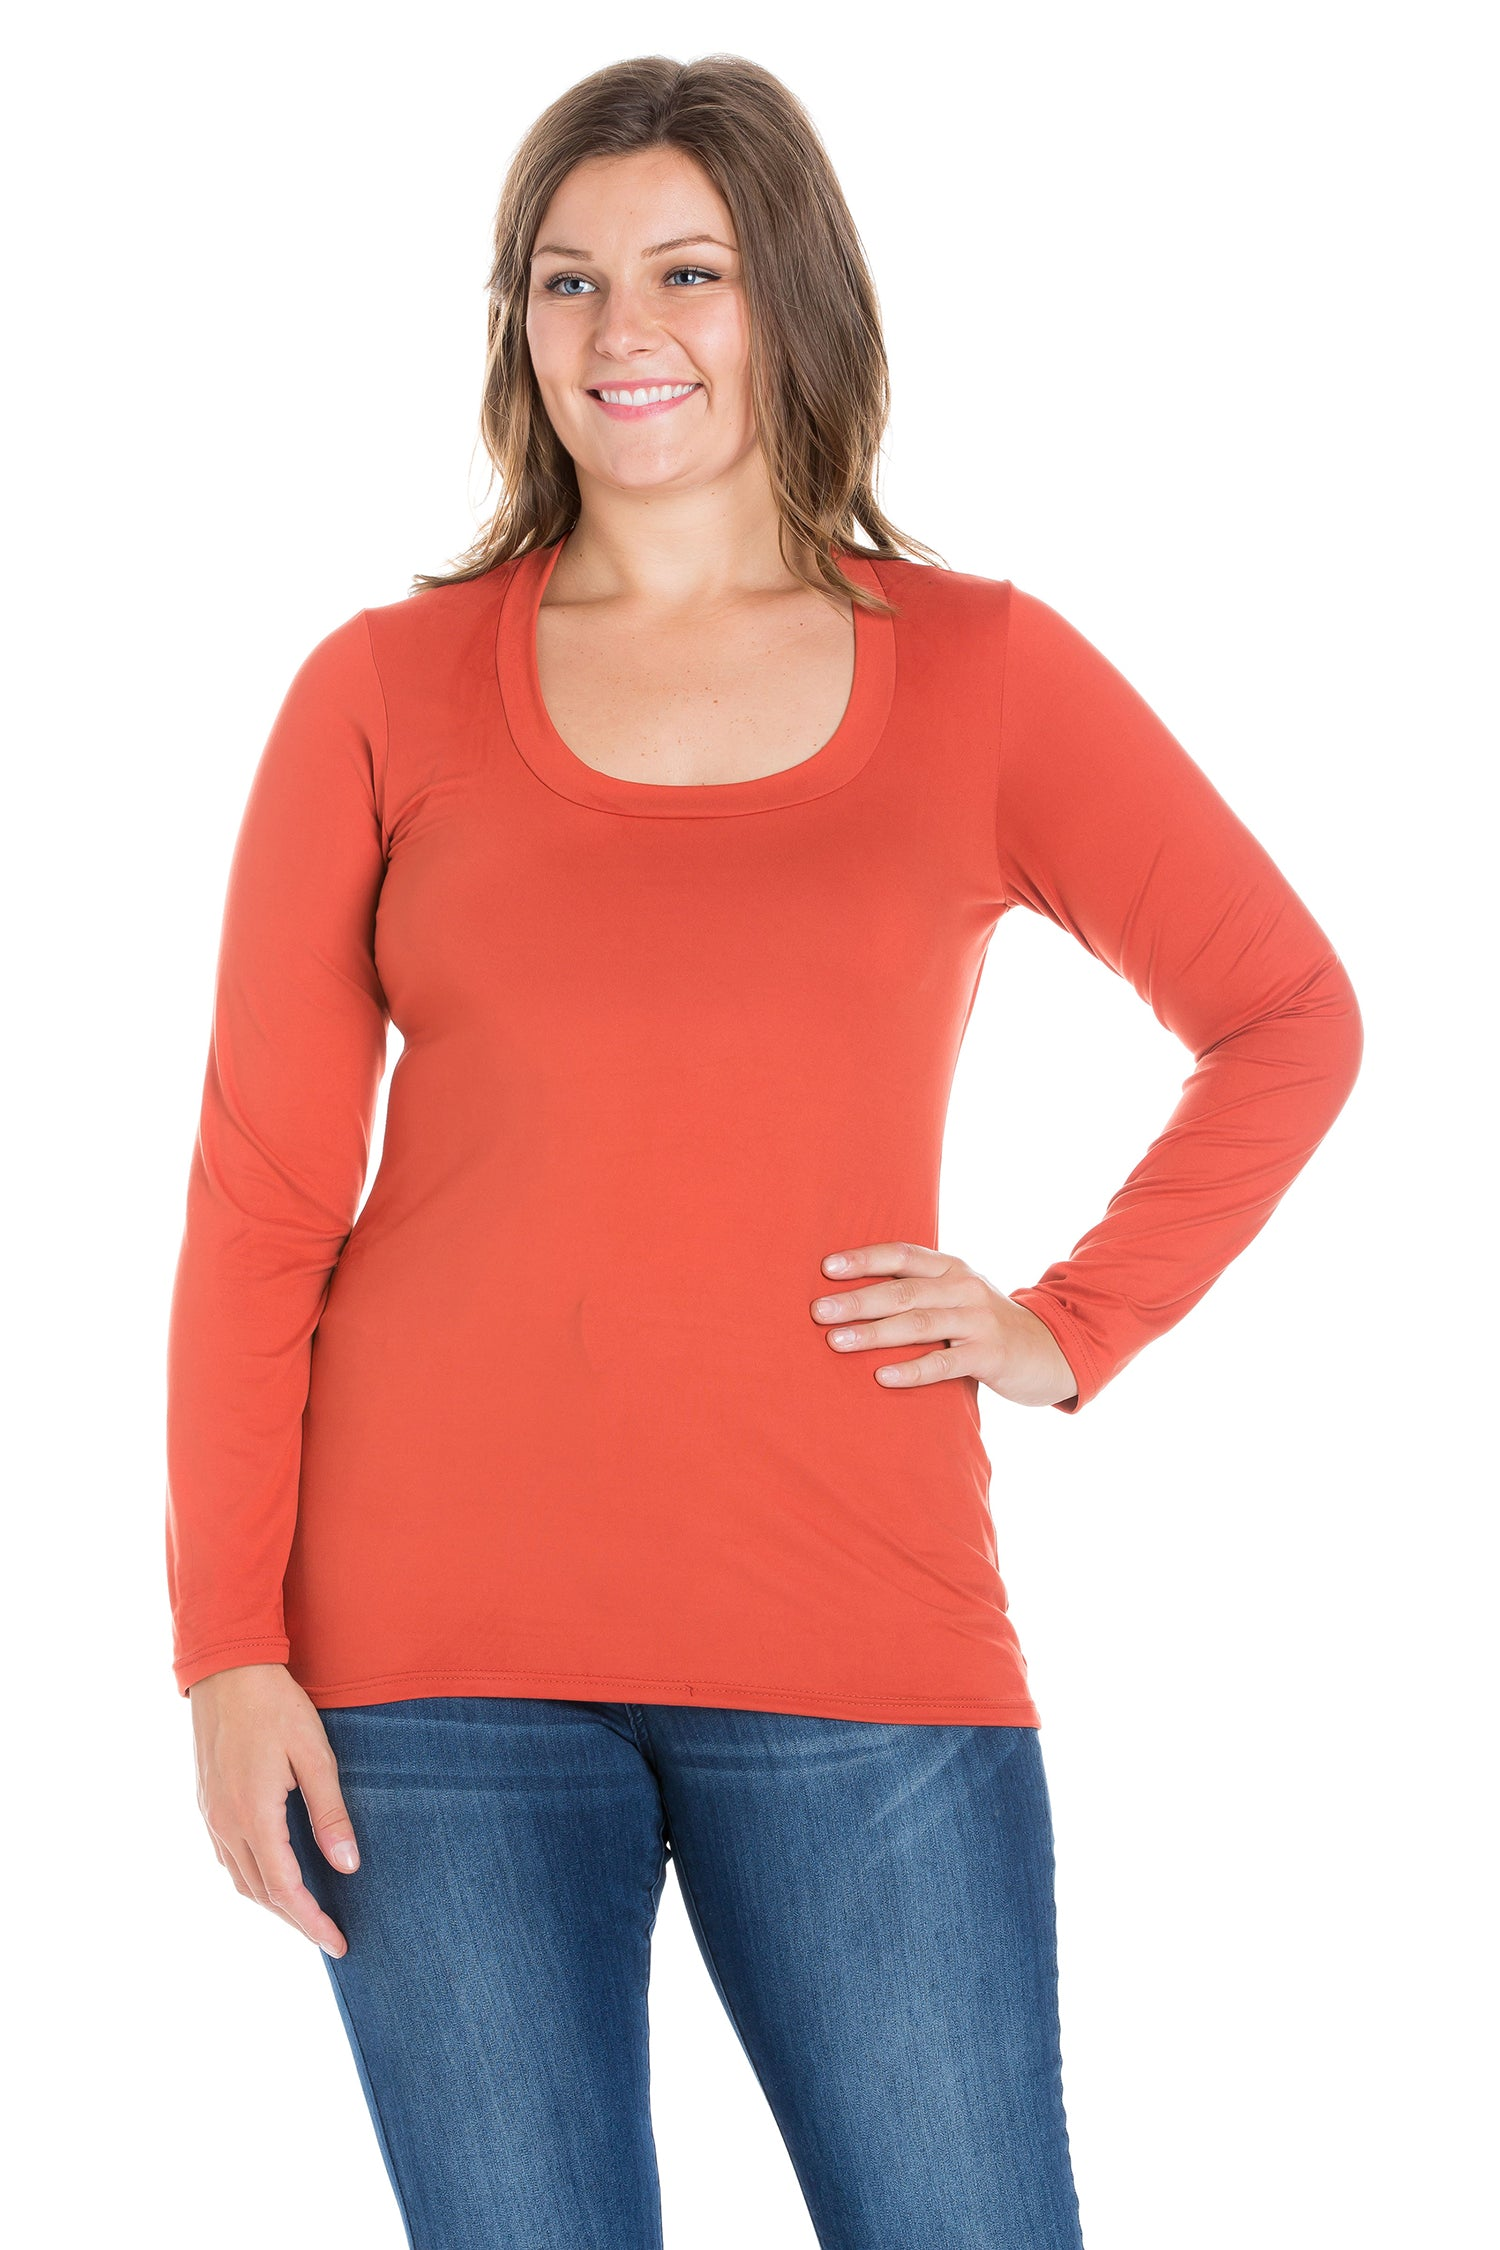 24seven Comfort Apparel Solid Long Sleeve Scoop Neck Plus Size Womens Tee-TOPS-24Seven Comfort Apparel-RUST-1X-24/7 Comfort Apparel